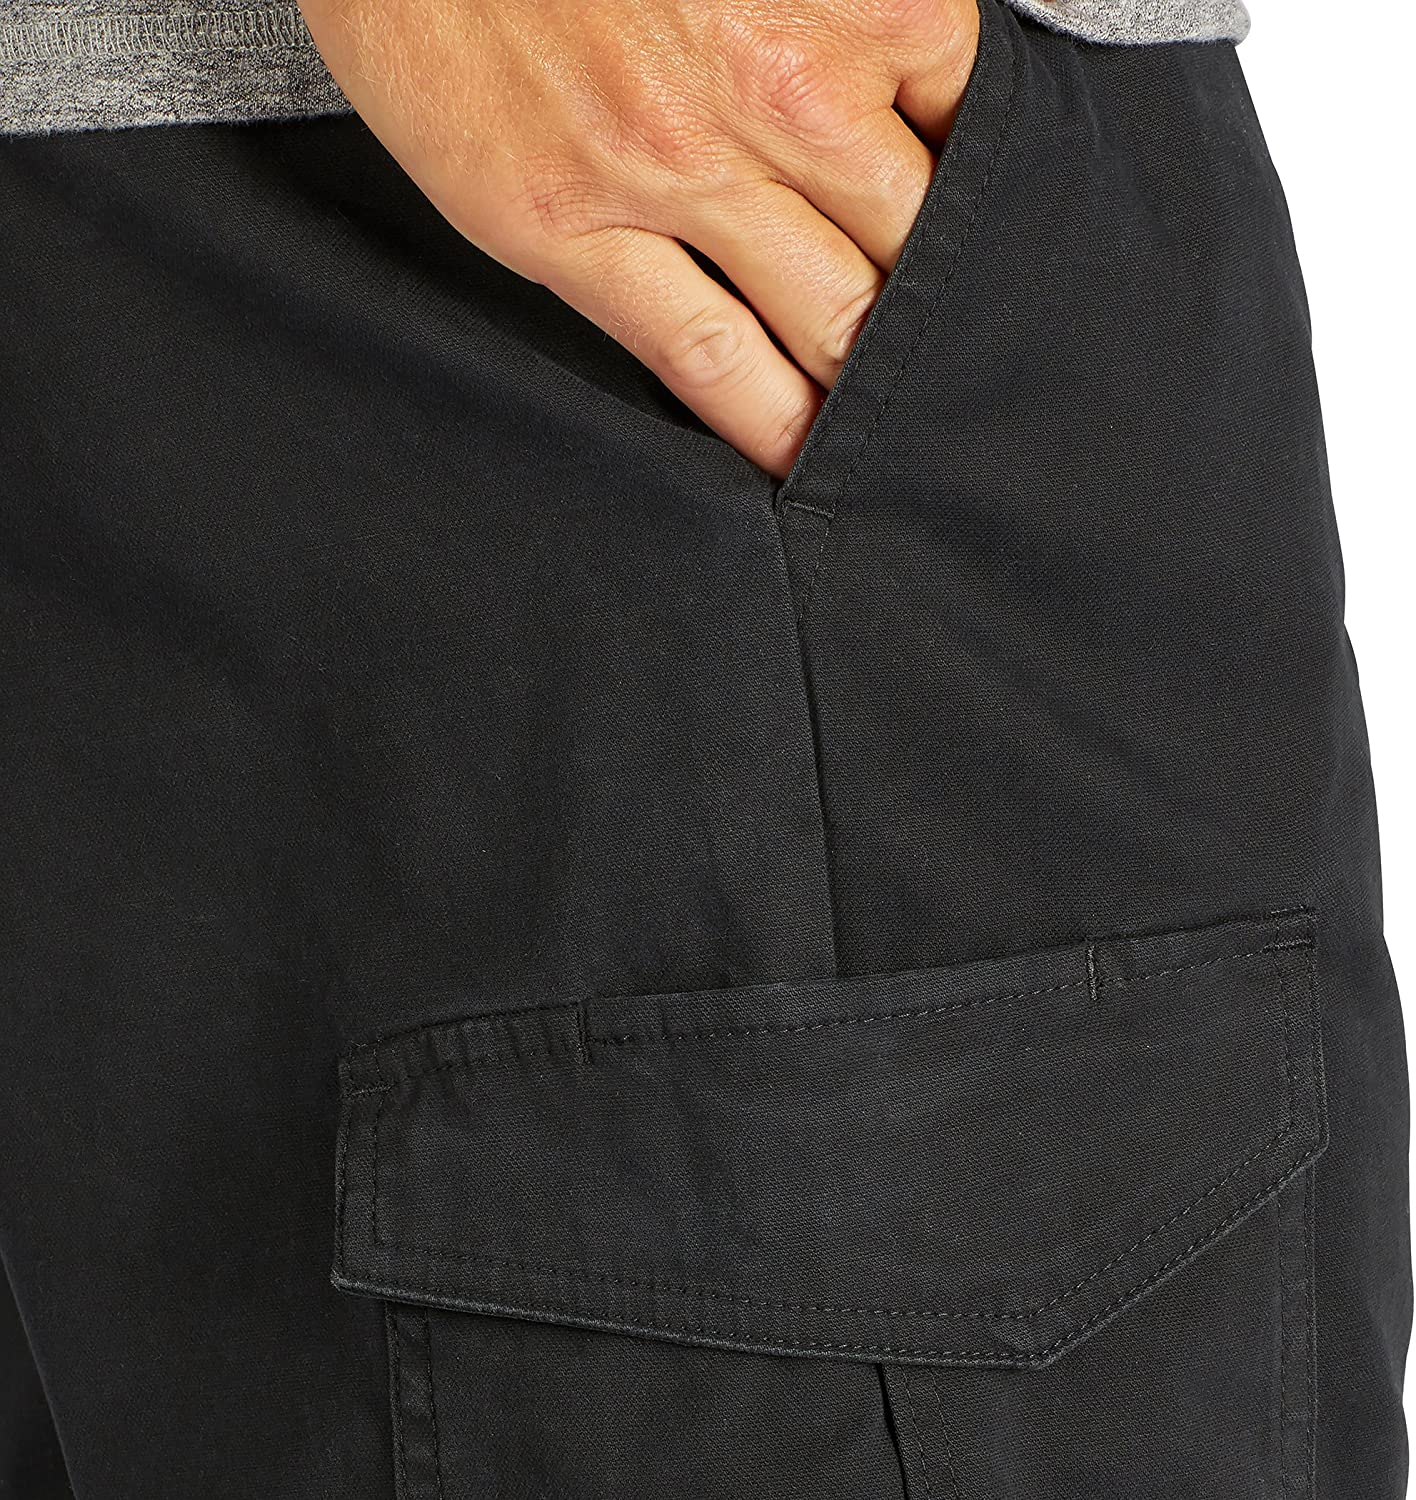 LEE Mens Extreme Motion Rover Cargo Short